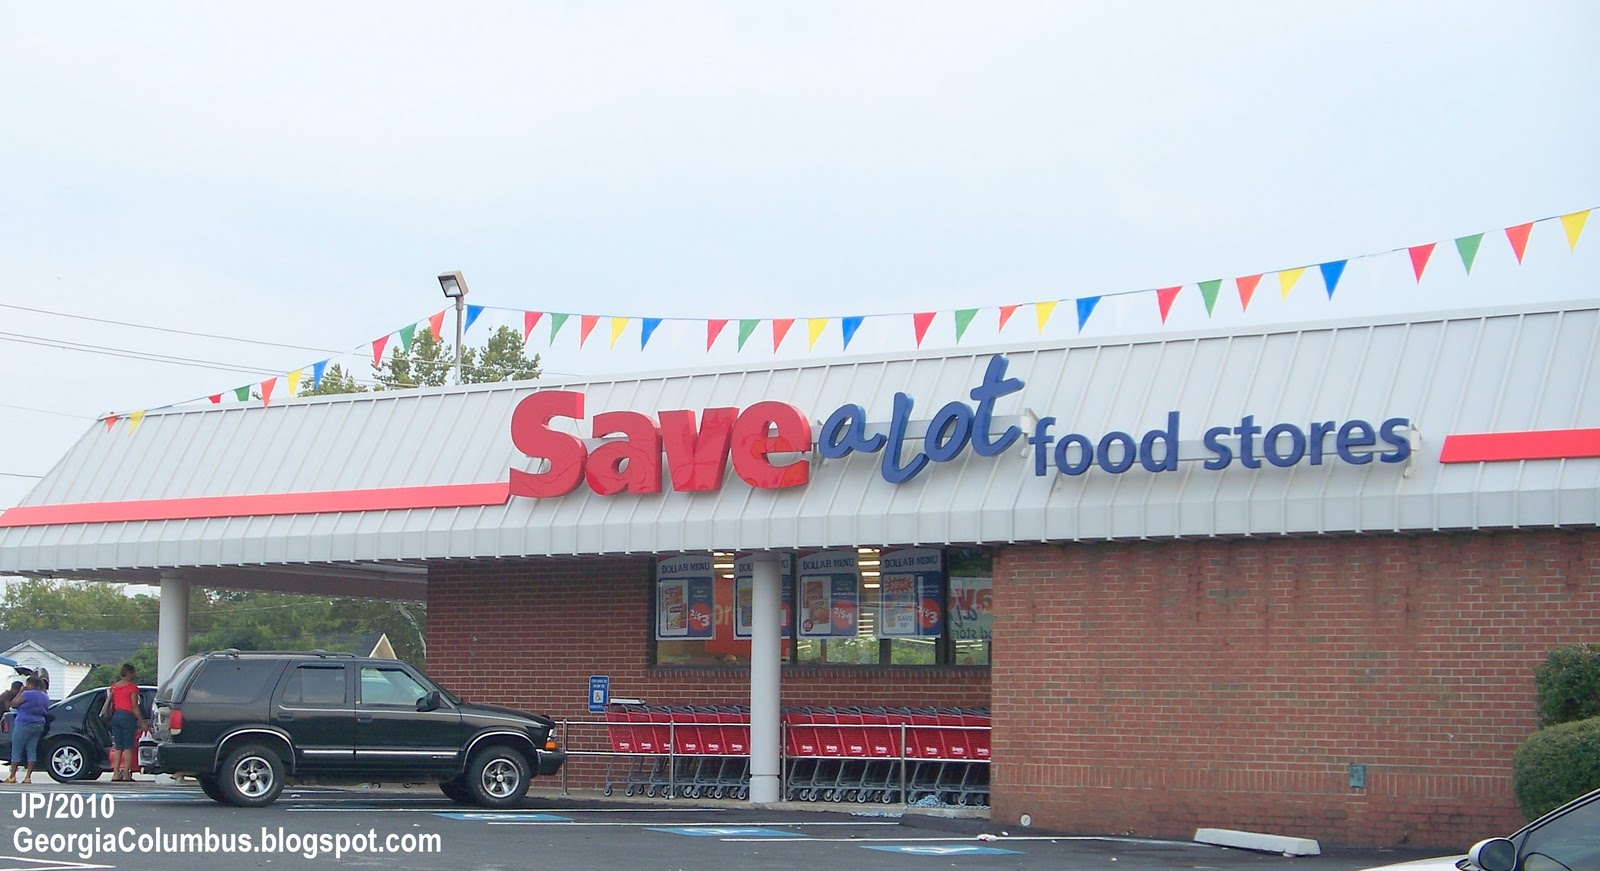 At Save-A-Lot, we know hard discount grocery. We make grocery shopping on a budget possible by offering you savings up to 40%. We're proud to offer you fresh cut meat in-store every day, quality fresh fruit and vegetables, and exciting, exclusive brands at everyday low prices.